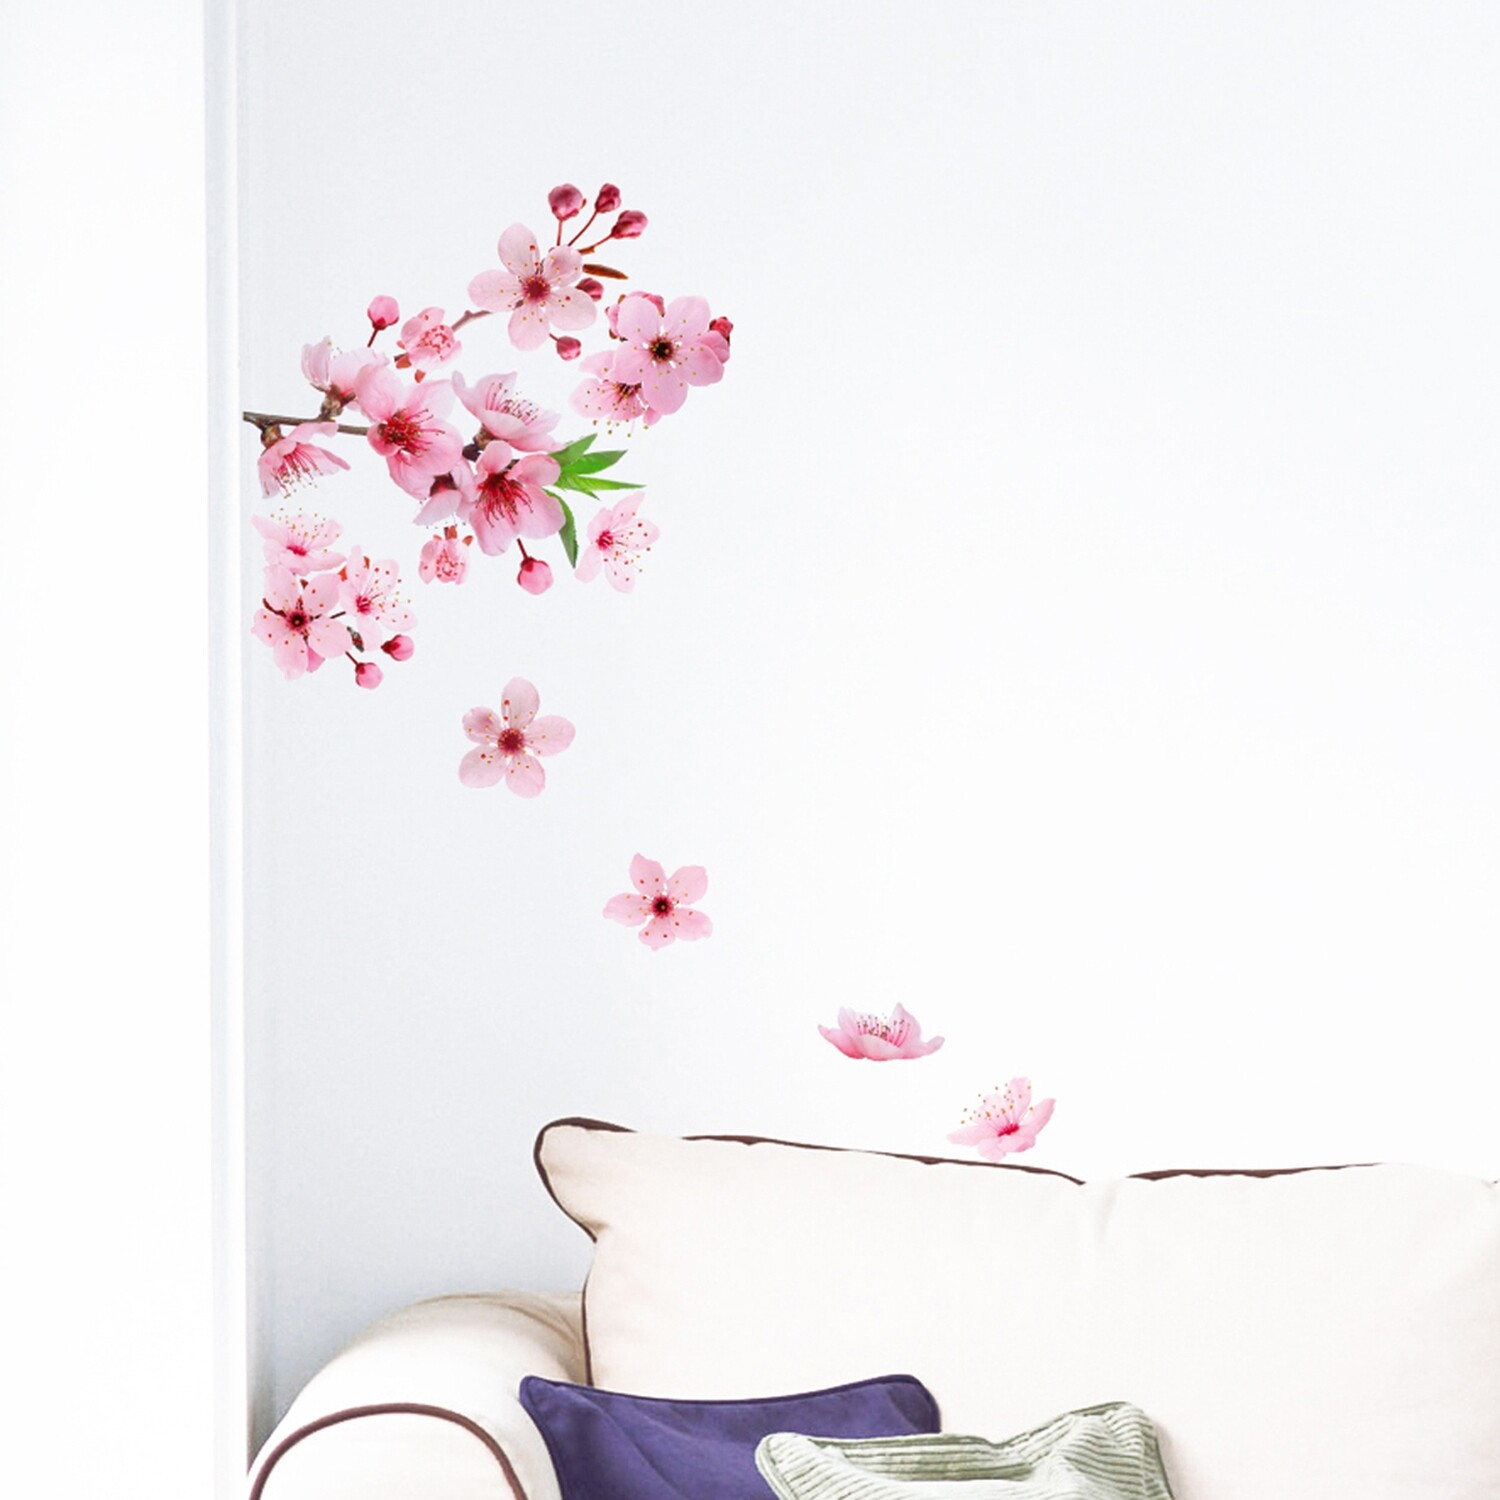 Crearreda 54327 - Cherry Blossom Self Adhesive Wall Sticker